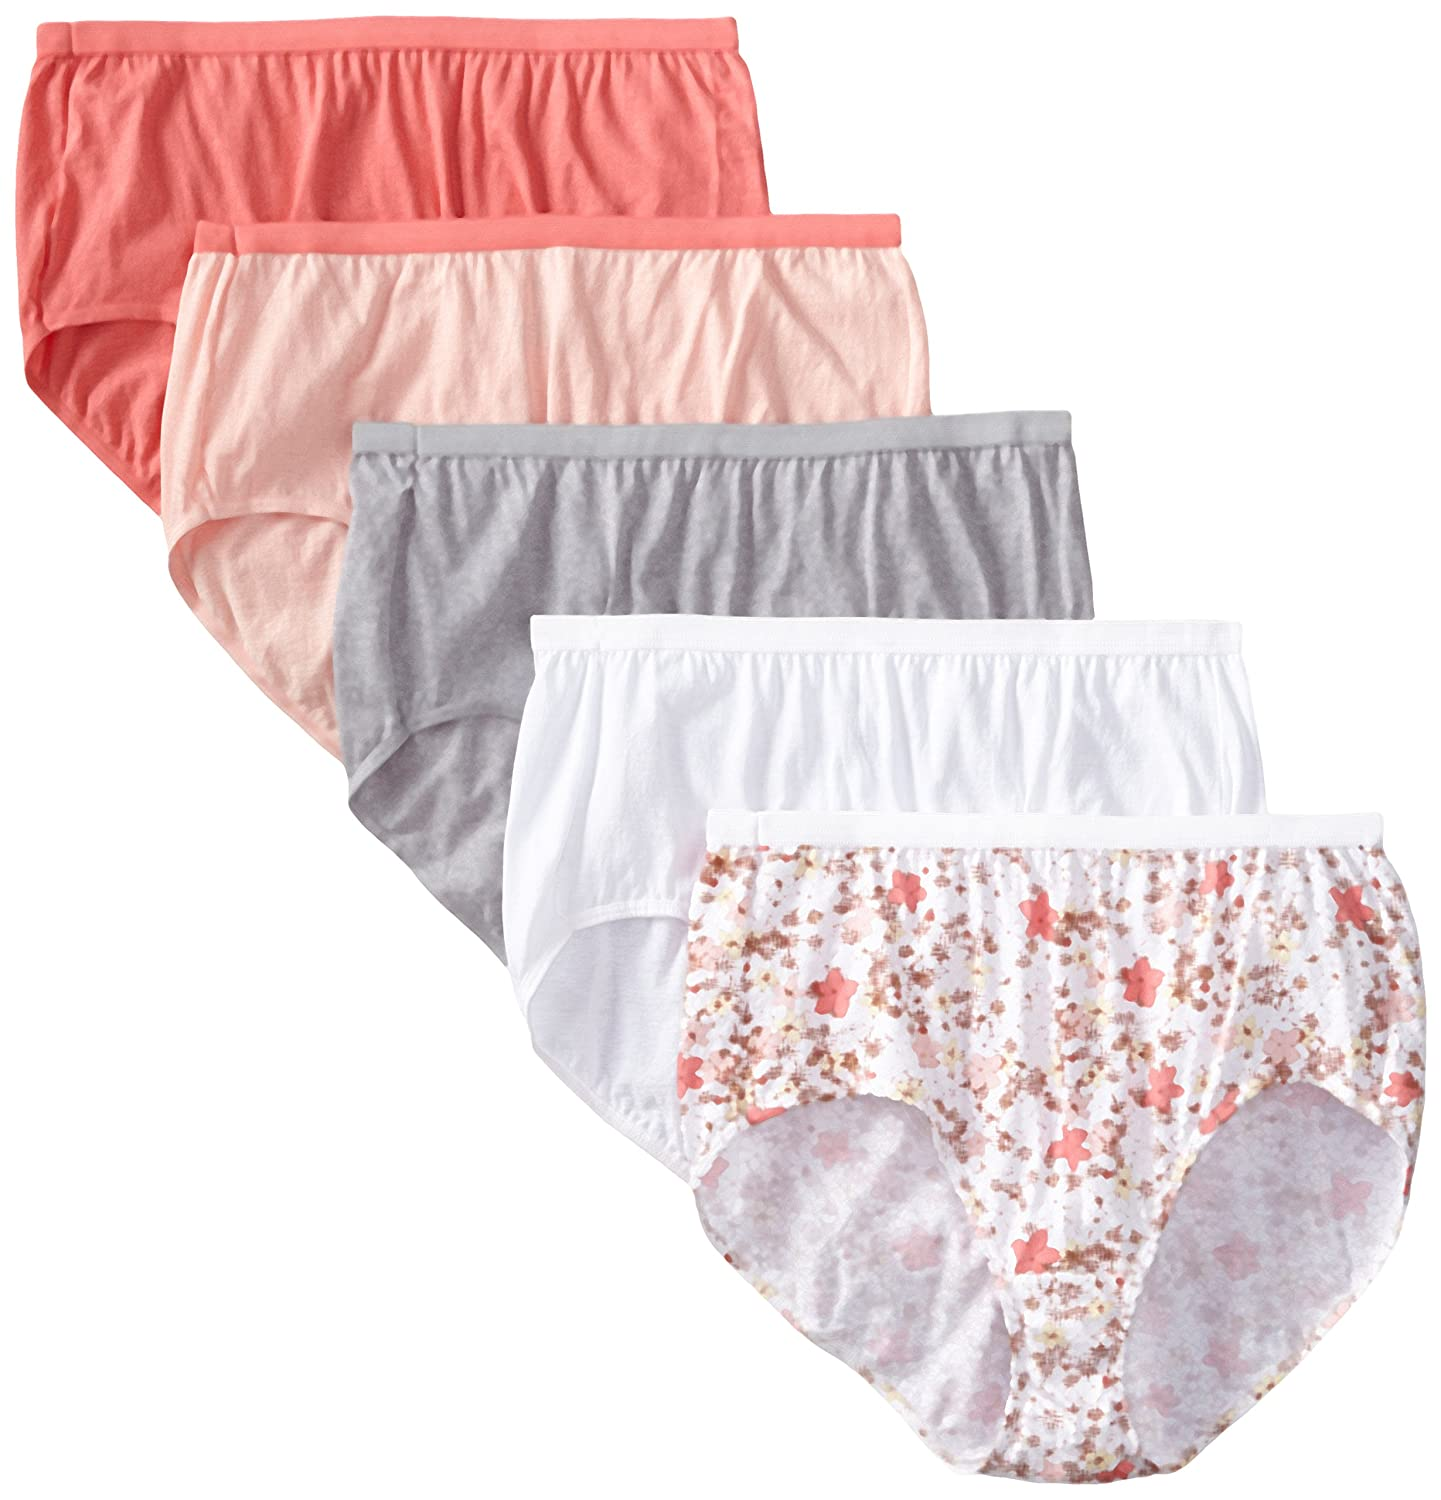 Just My Size Women's 5 Pack Cotton Brief Assorted Color Panty Just My Size IA- Panties 1610C5